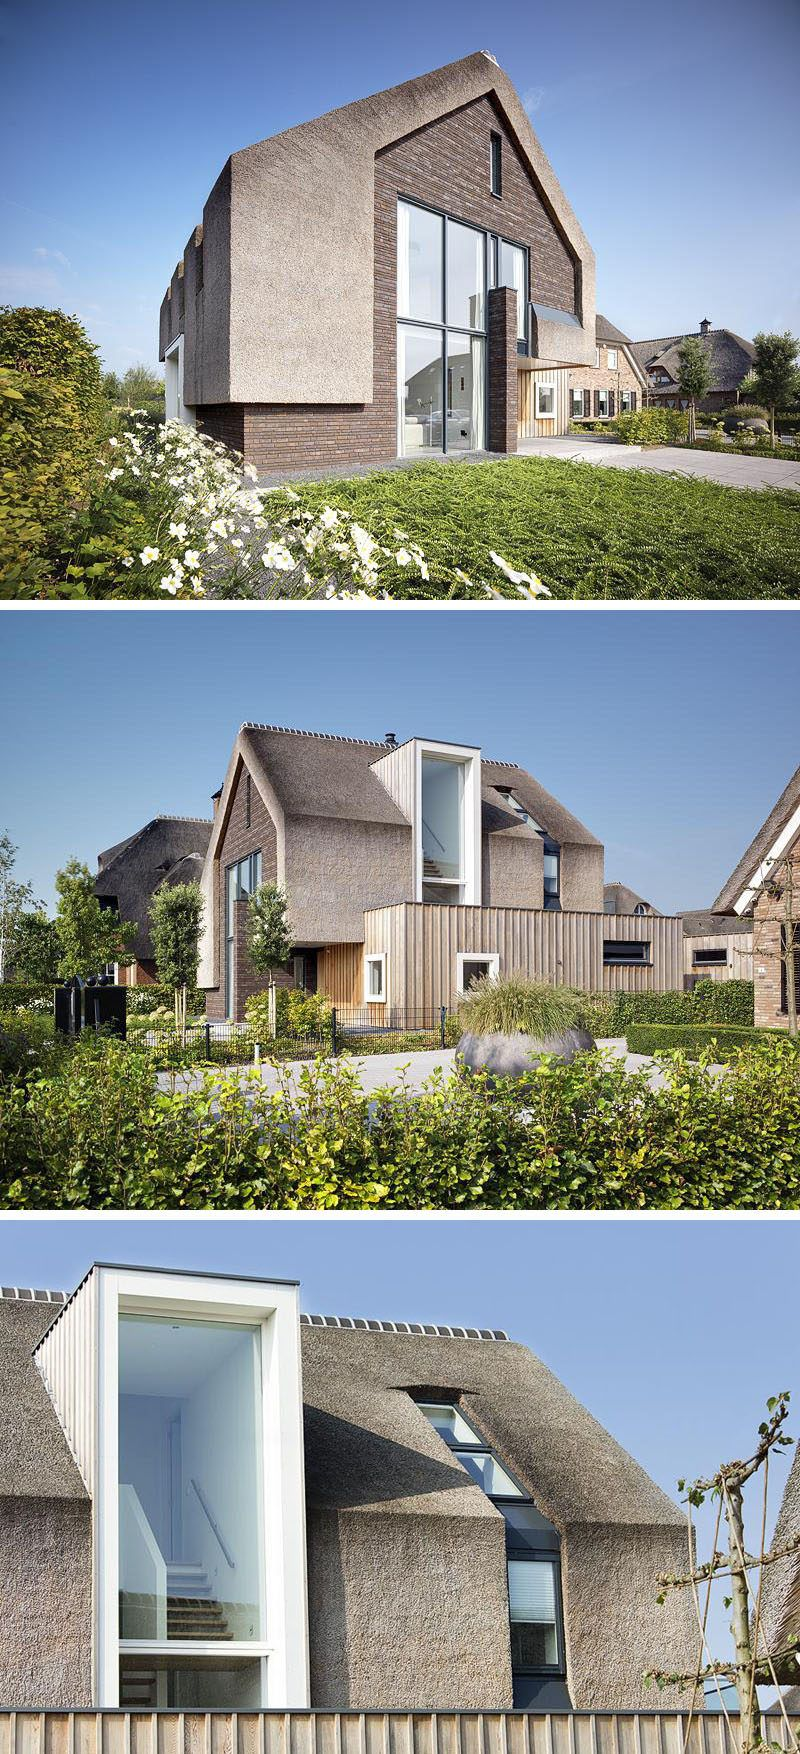 12 Examples Of Modern Houses And Buildings That Have A Thatched Roof Thatched Roof Roof Architecture Architecture